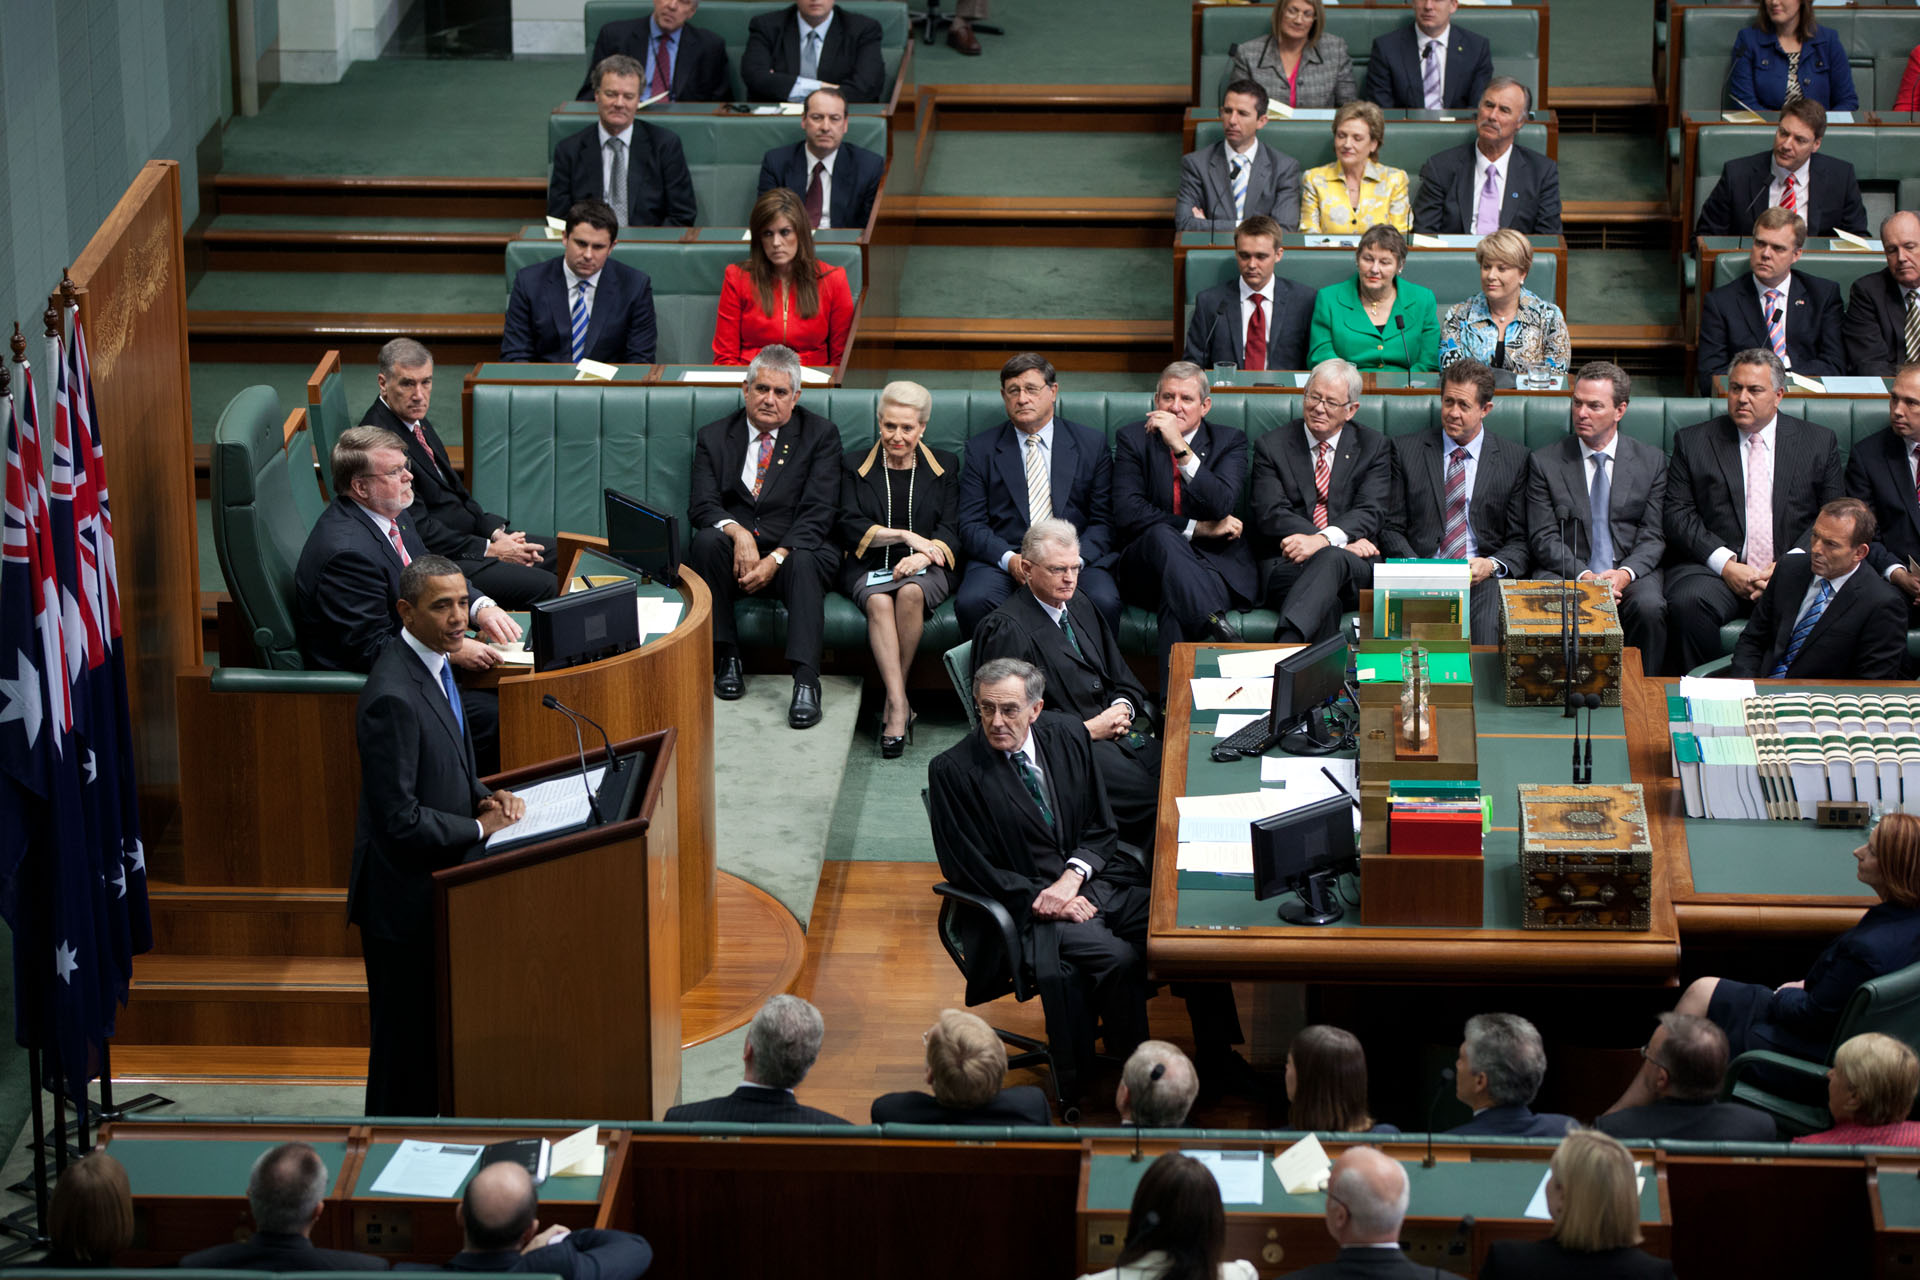 President Barack Obama Addresses The Australian Parliament